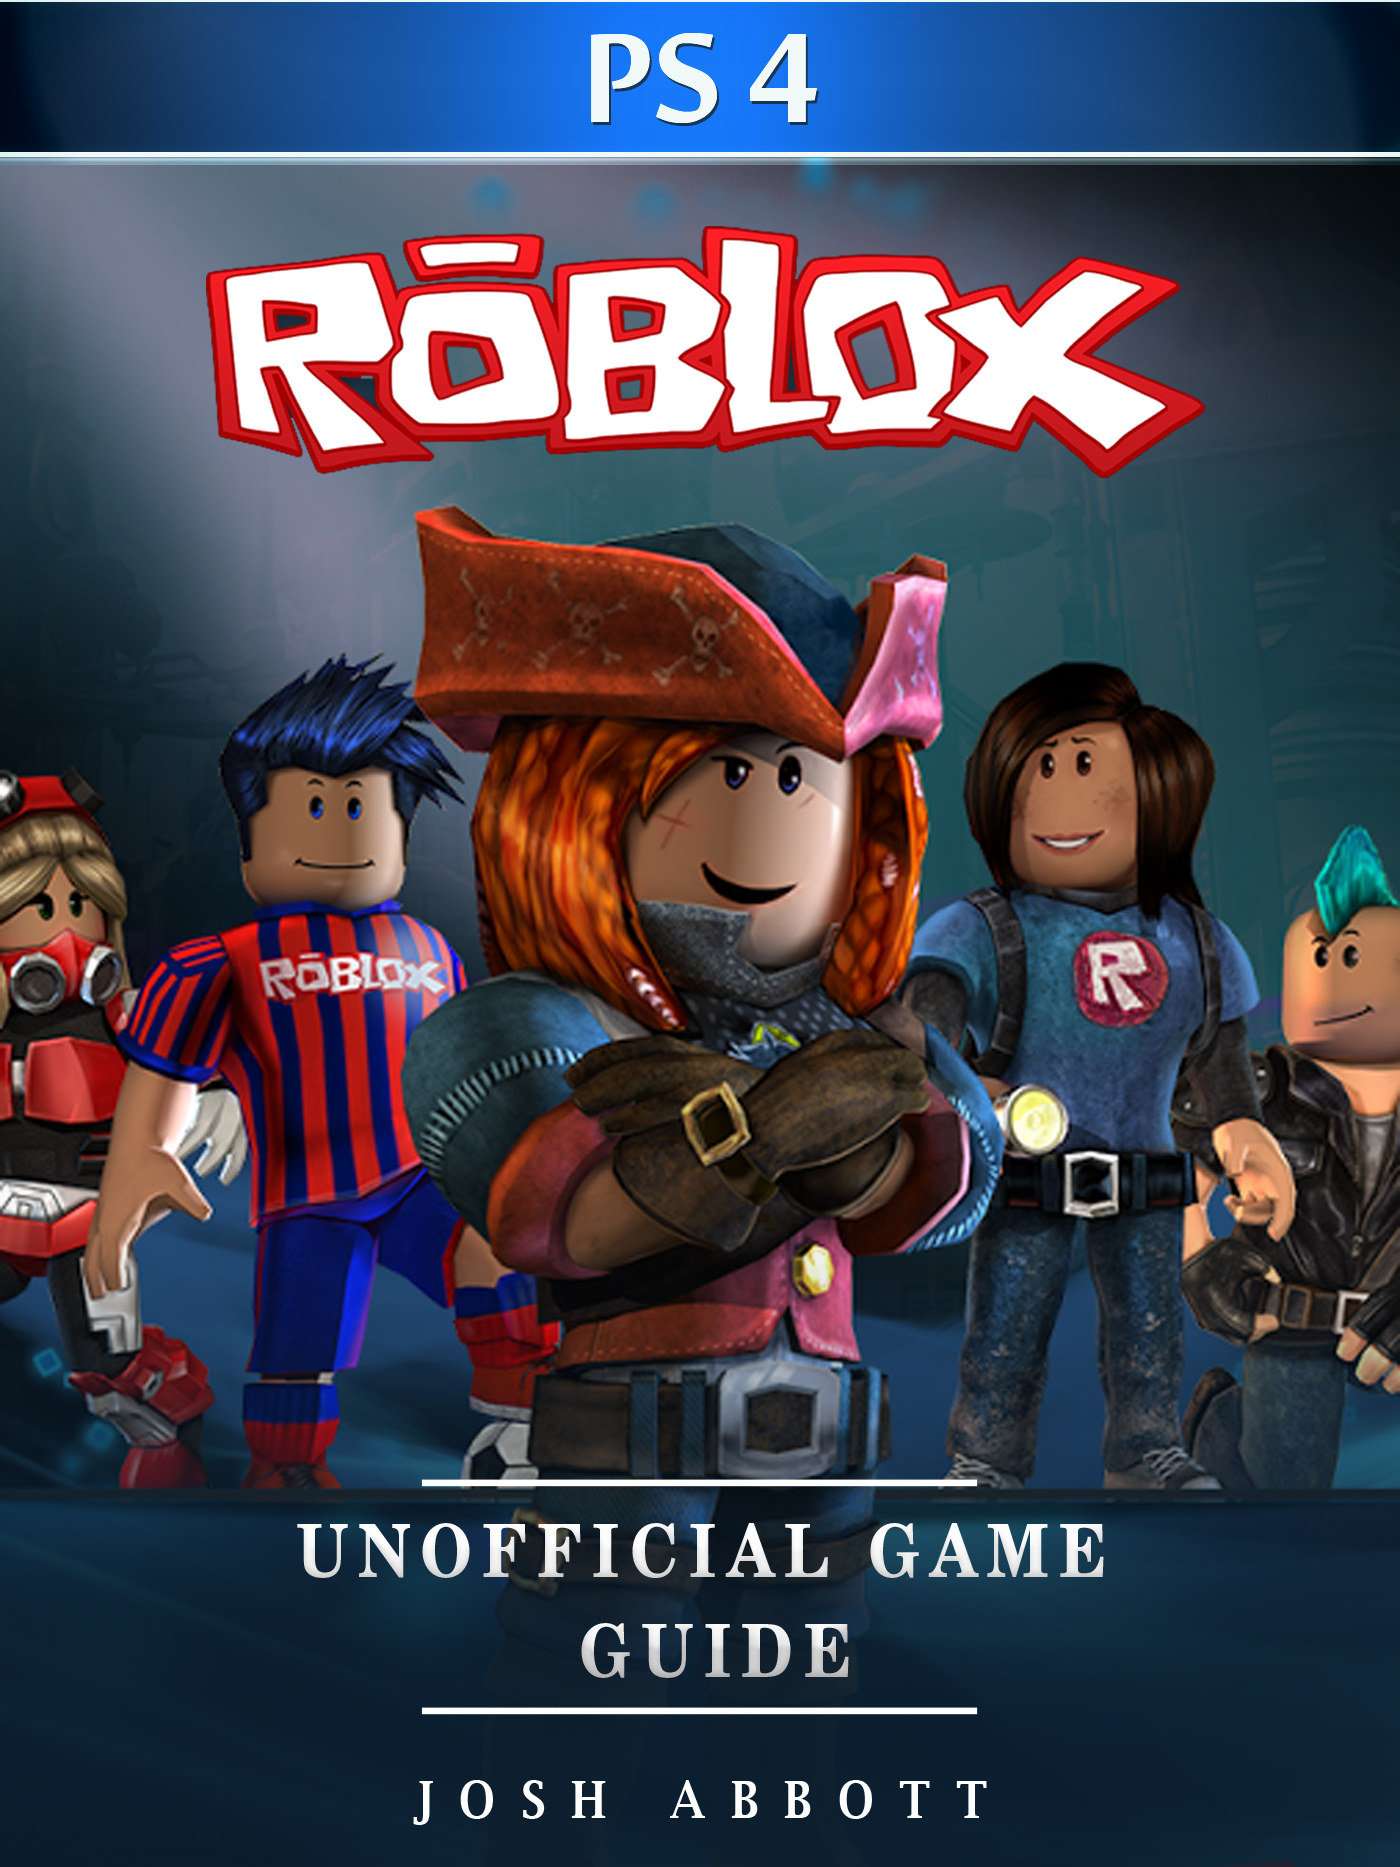 how to download roblox on ps4 for free